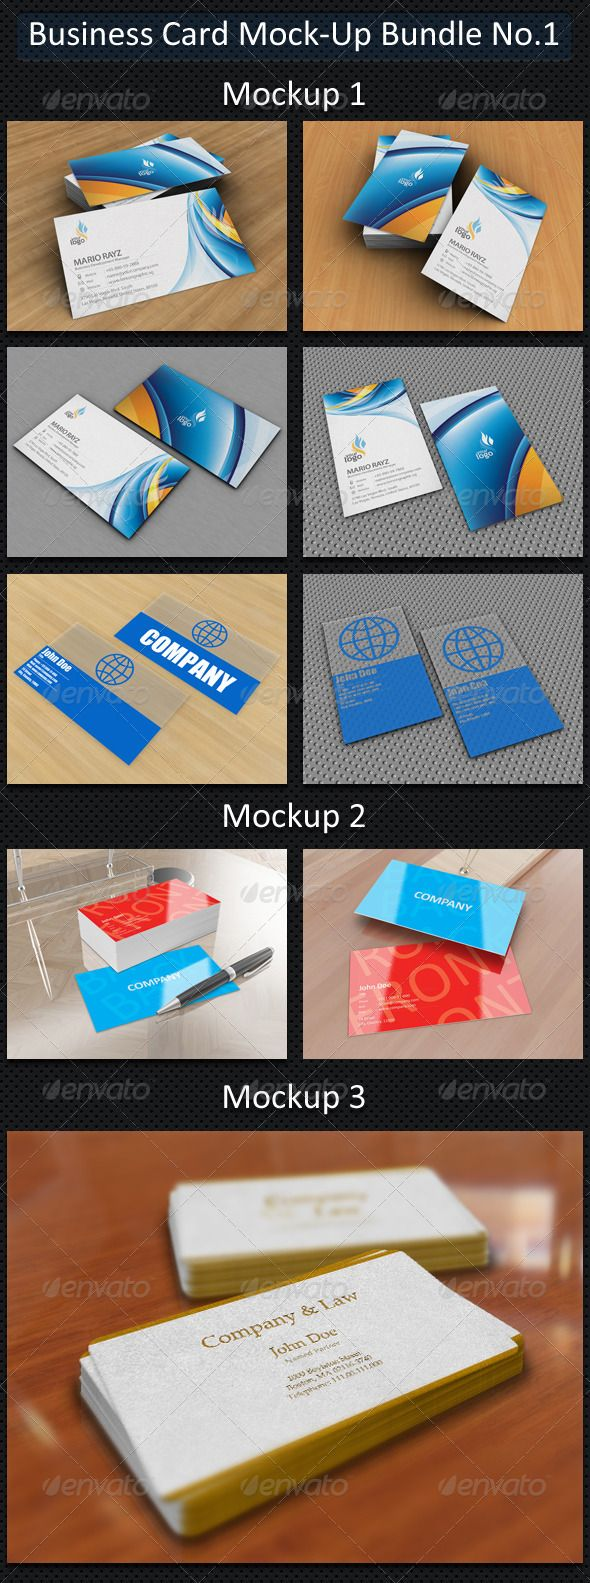 Business card mock up bundle no1 pinterest business cards business card mockup bundle no1 photoshop psd corporate id mockup mockup available here reheart Images